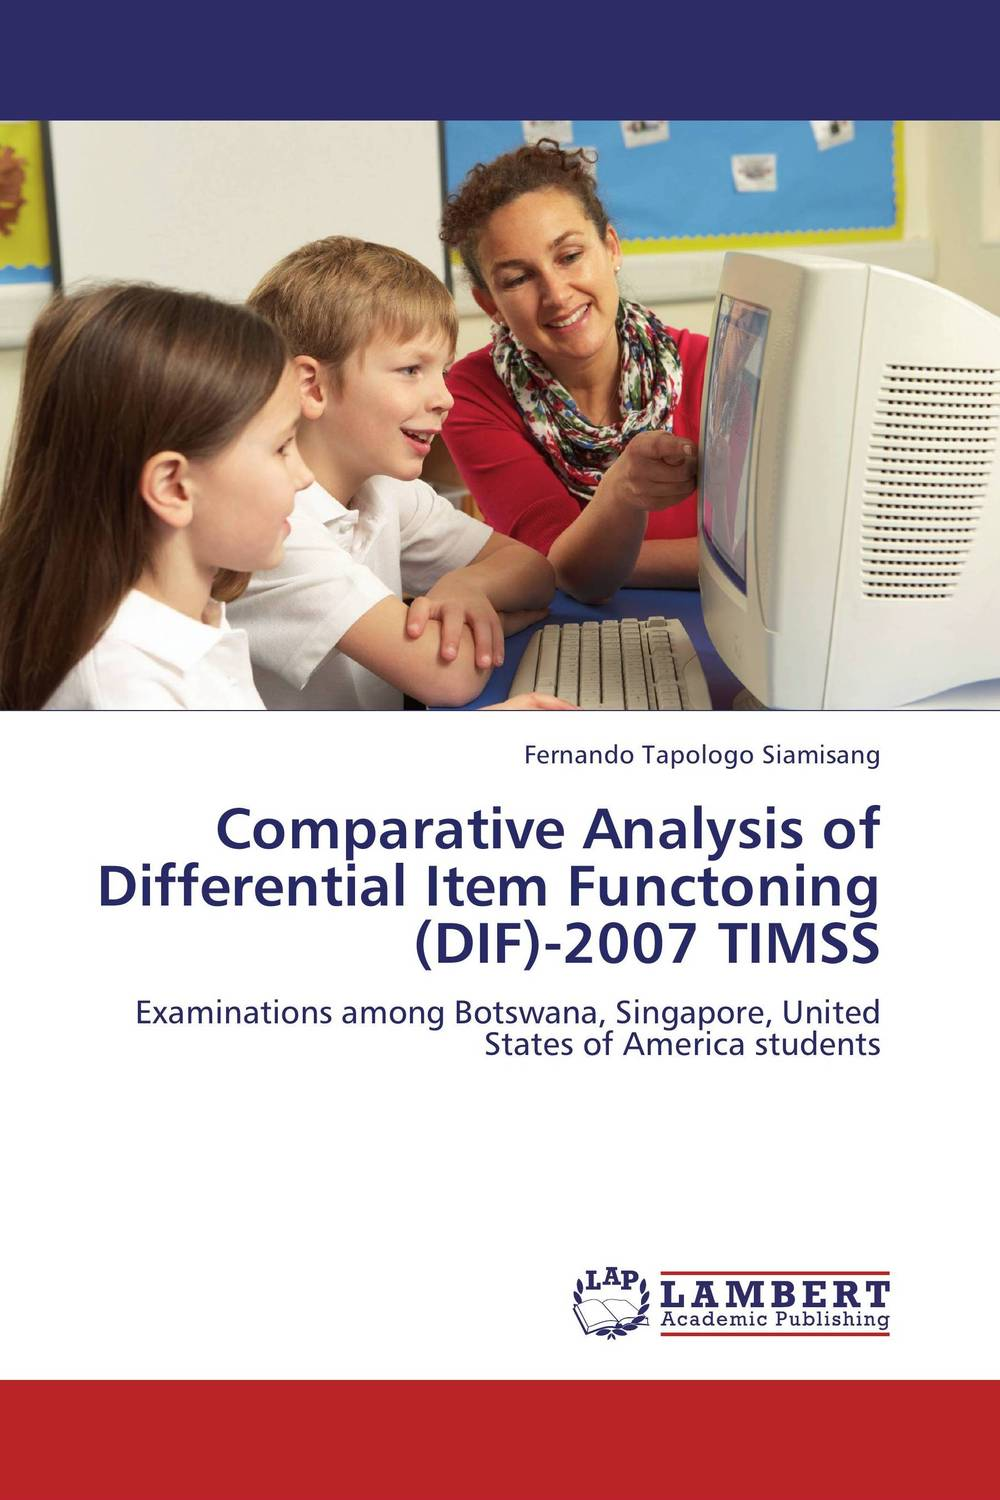 Comparative Analysis of Differential Item Functoning (DIF)-2007 TIMSS link for tractor parts or other items not found in the store covers the items as agreed